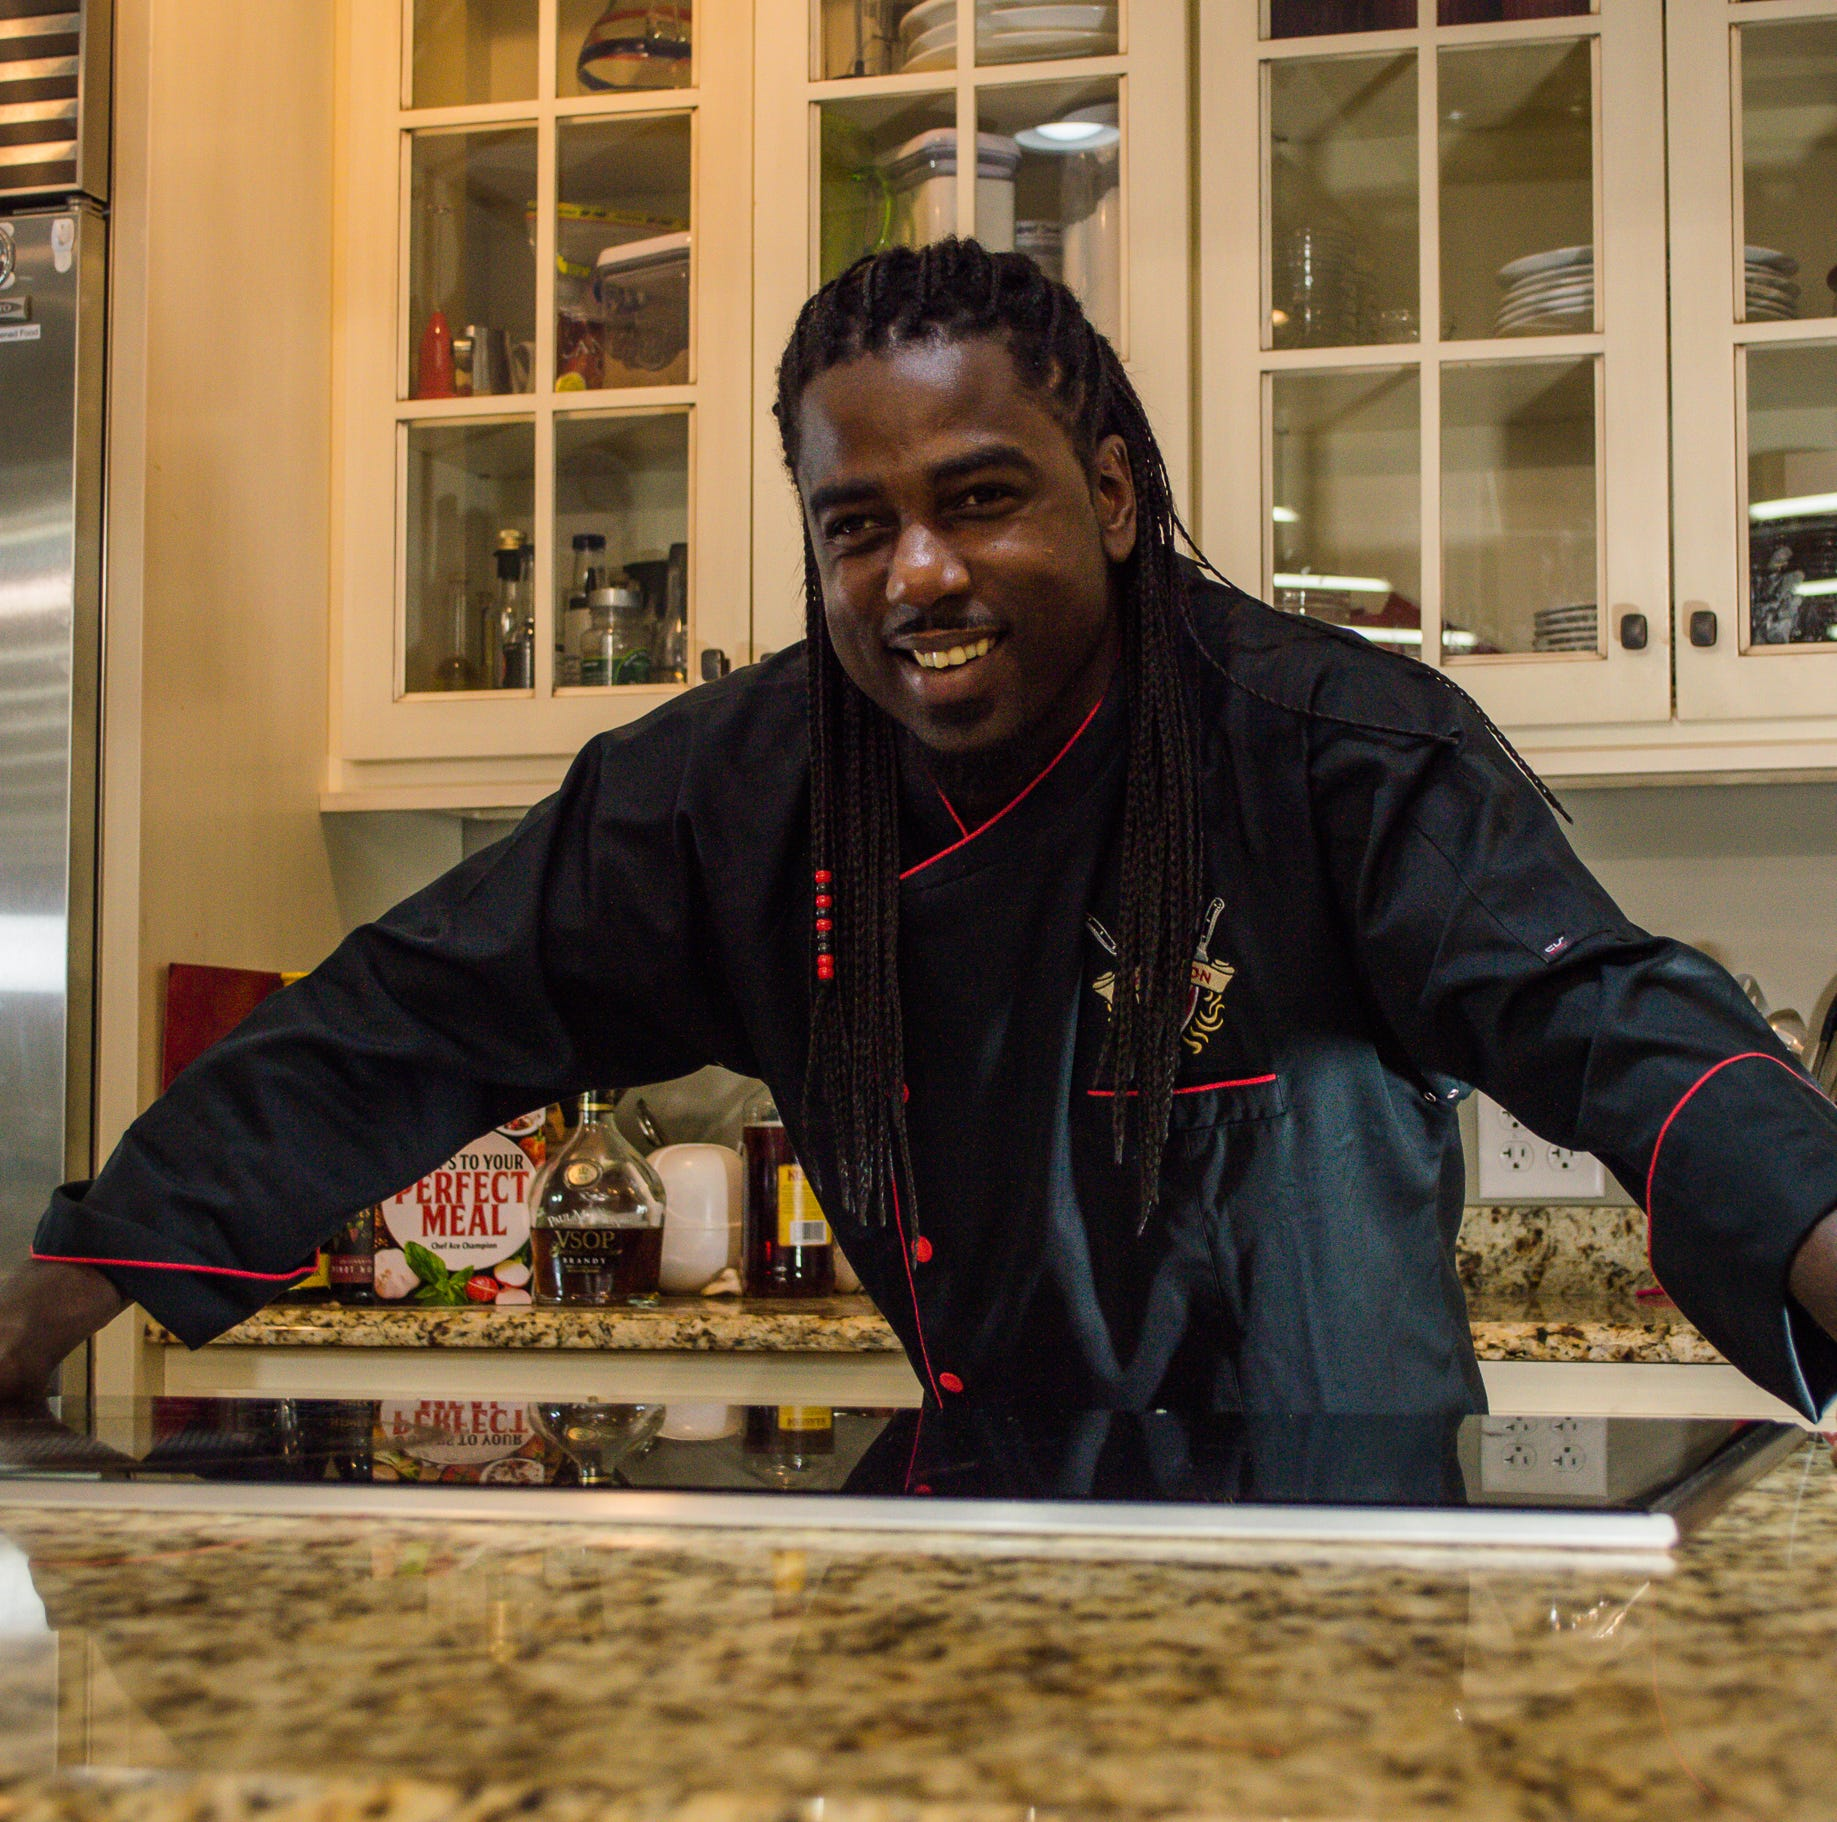 Combining New Orleans and Wisconsin flavors, Ace Champion's recipe for success